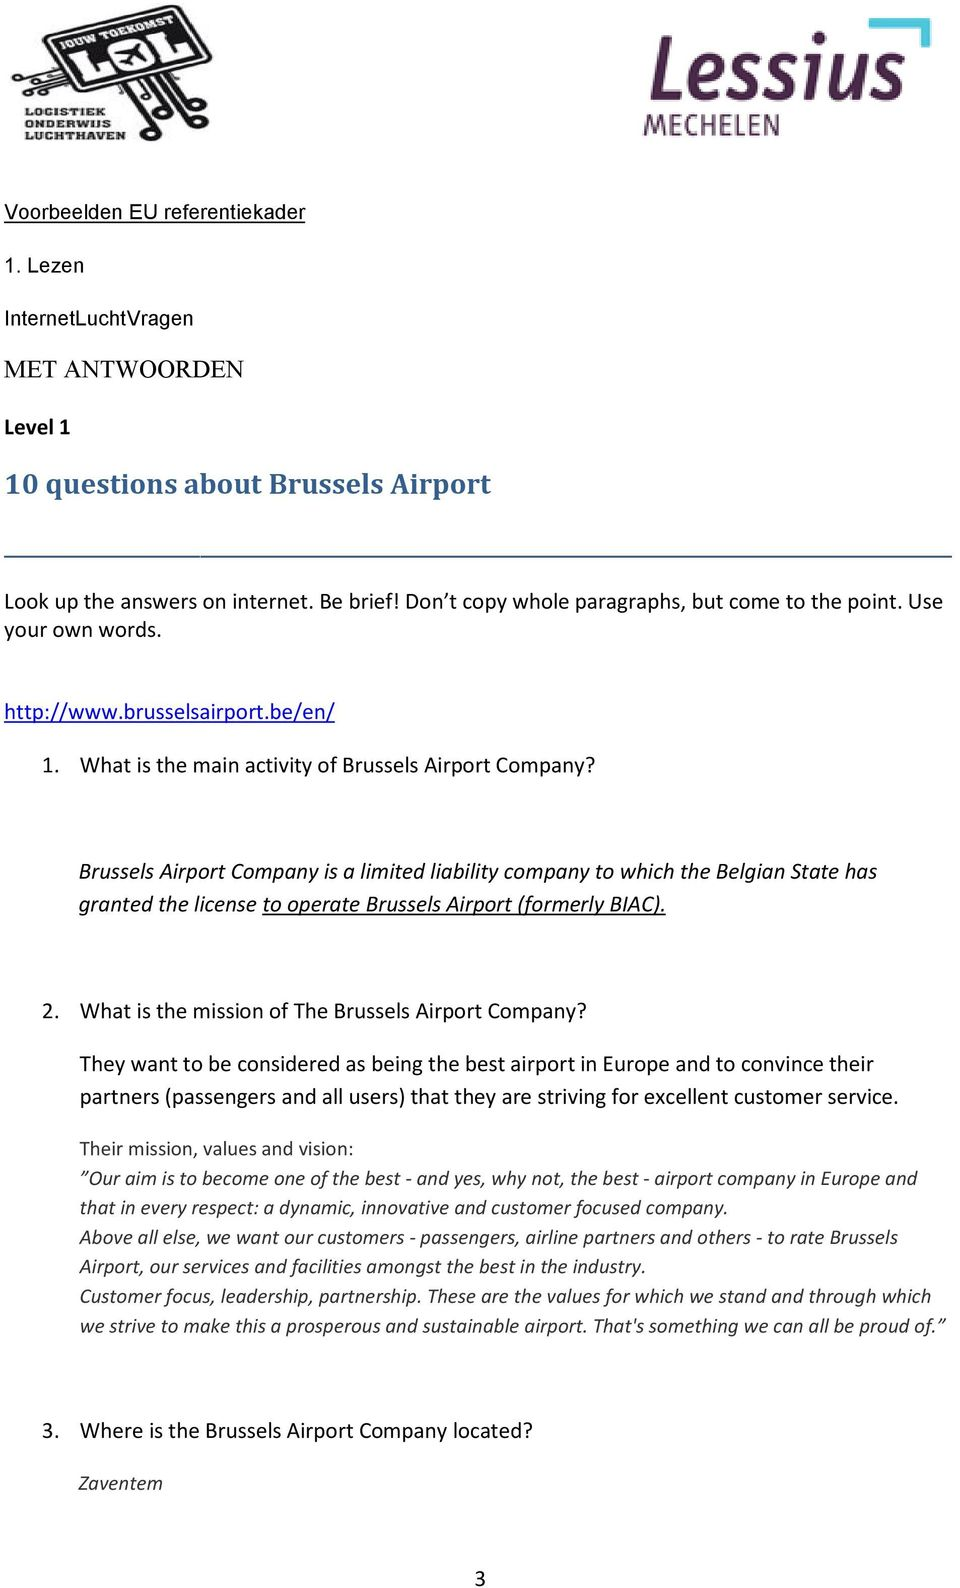 Brussels Airport Company is a limited liability company to which the Belgian State has granted the license to operate Brussels Airport (formerly BIAC). 2.